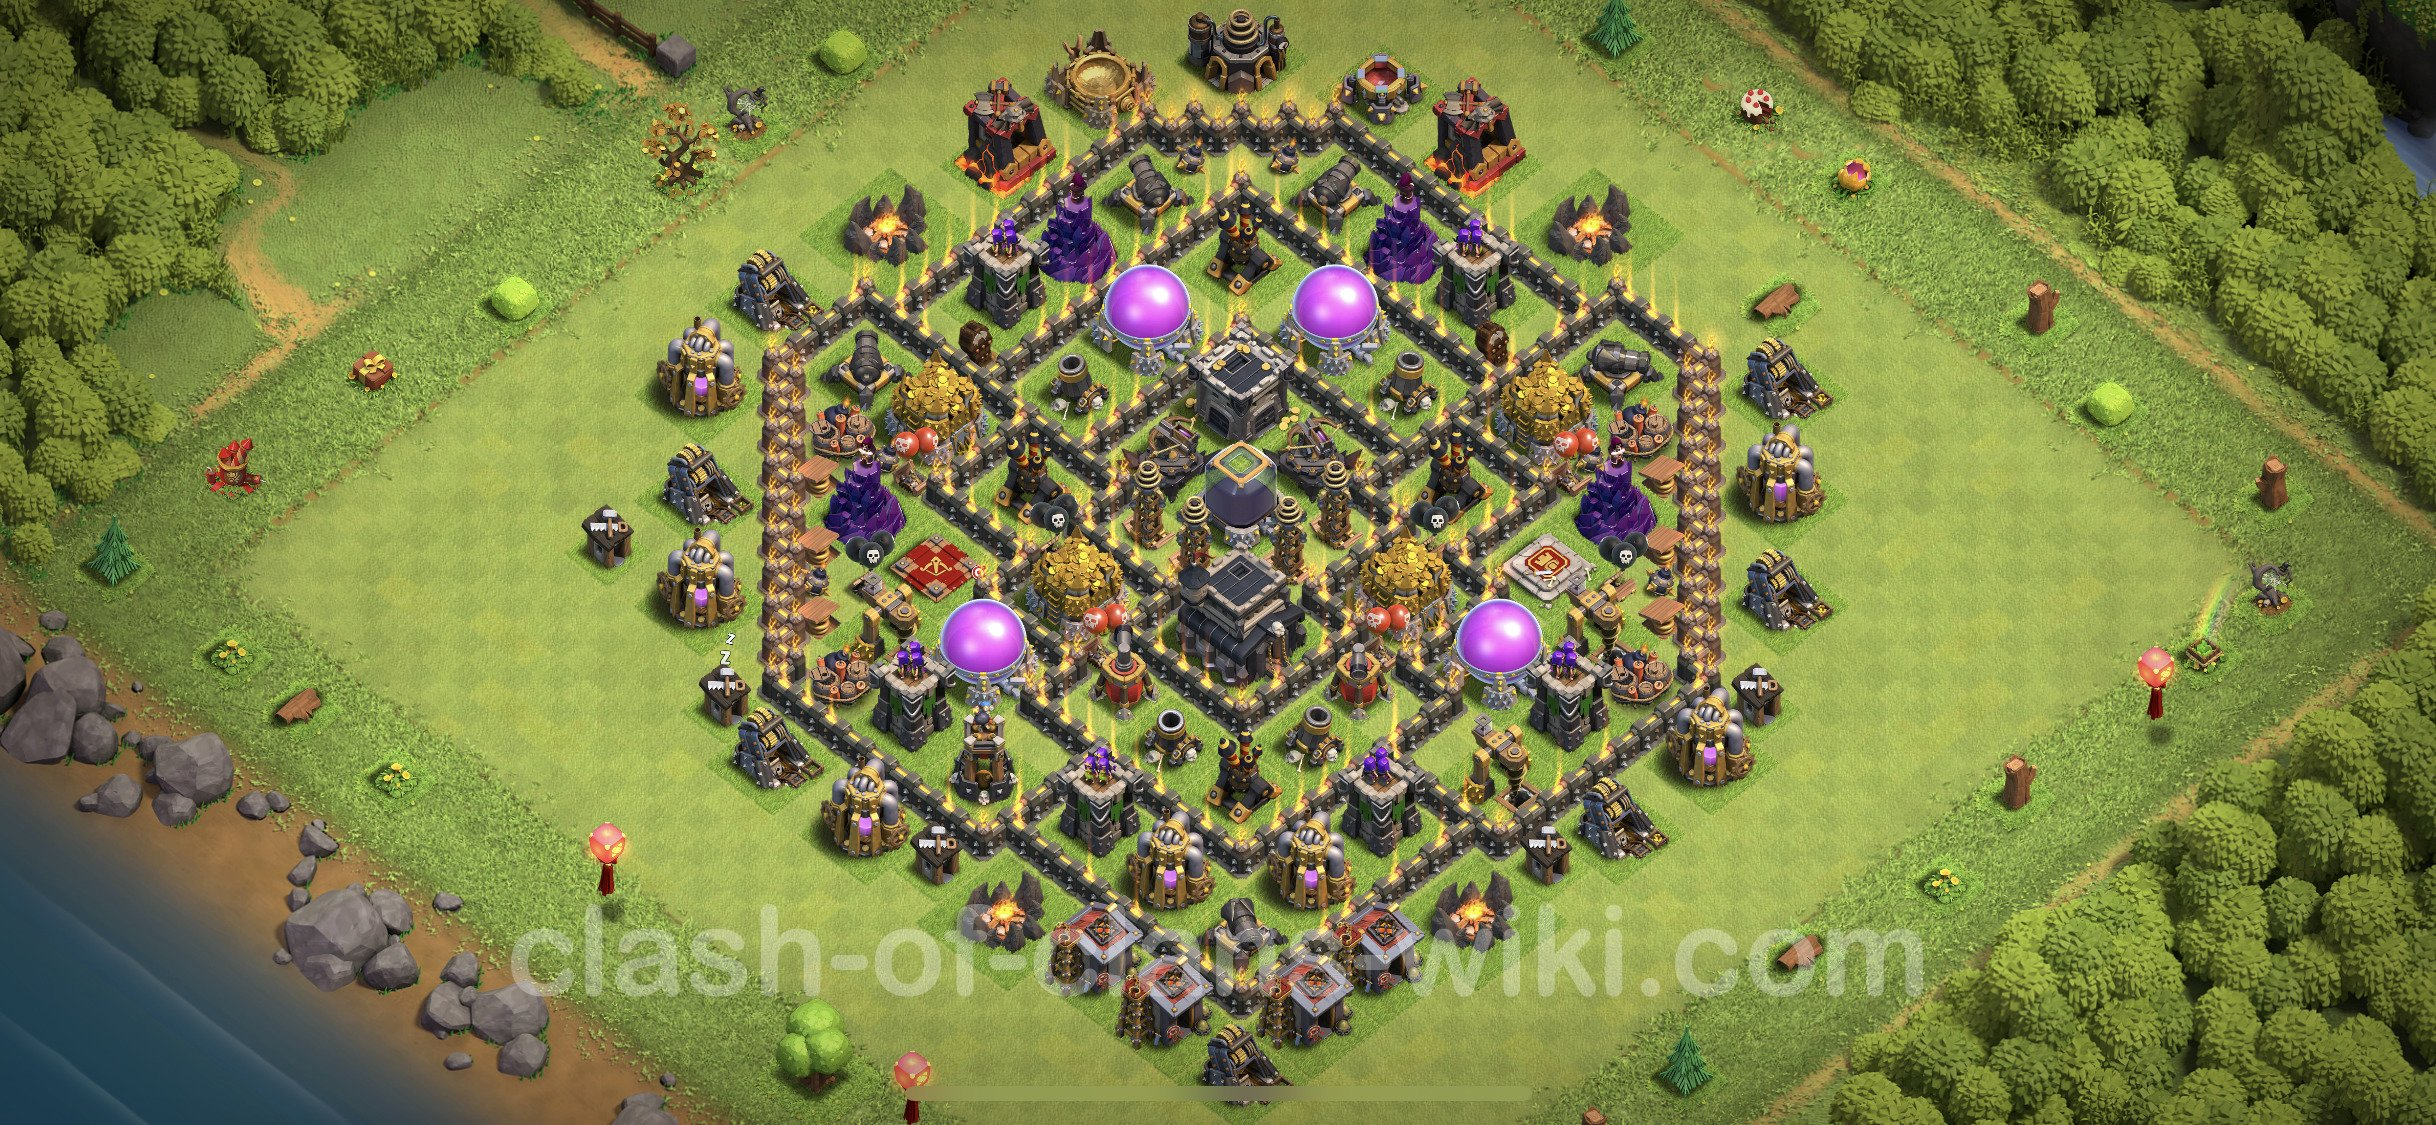 Best Anti 2 Stars Base TH9 with Link - Town Hall Level 9 Base Copy - (#122)